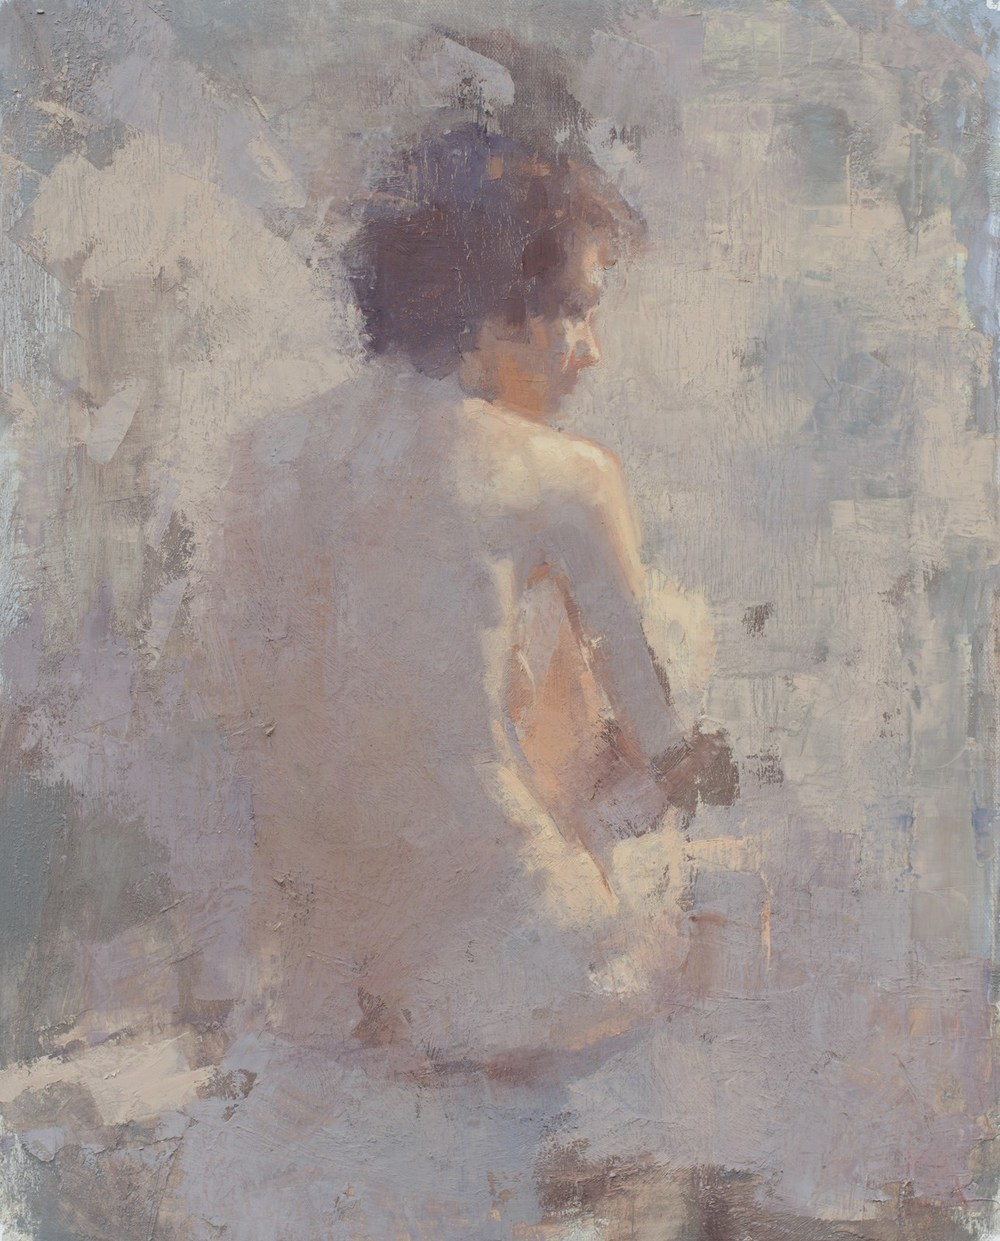 Aaron Coberly, Diffused Figure, oil, 16 x 20